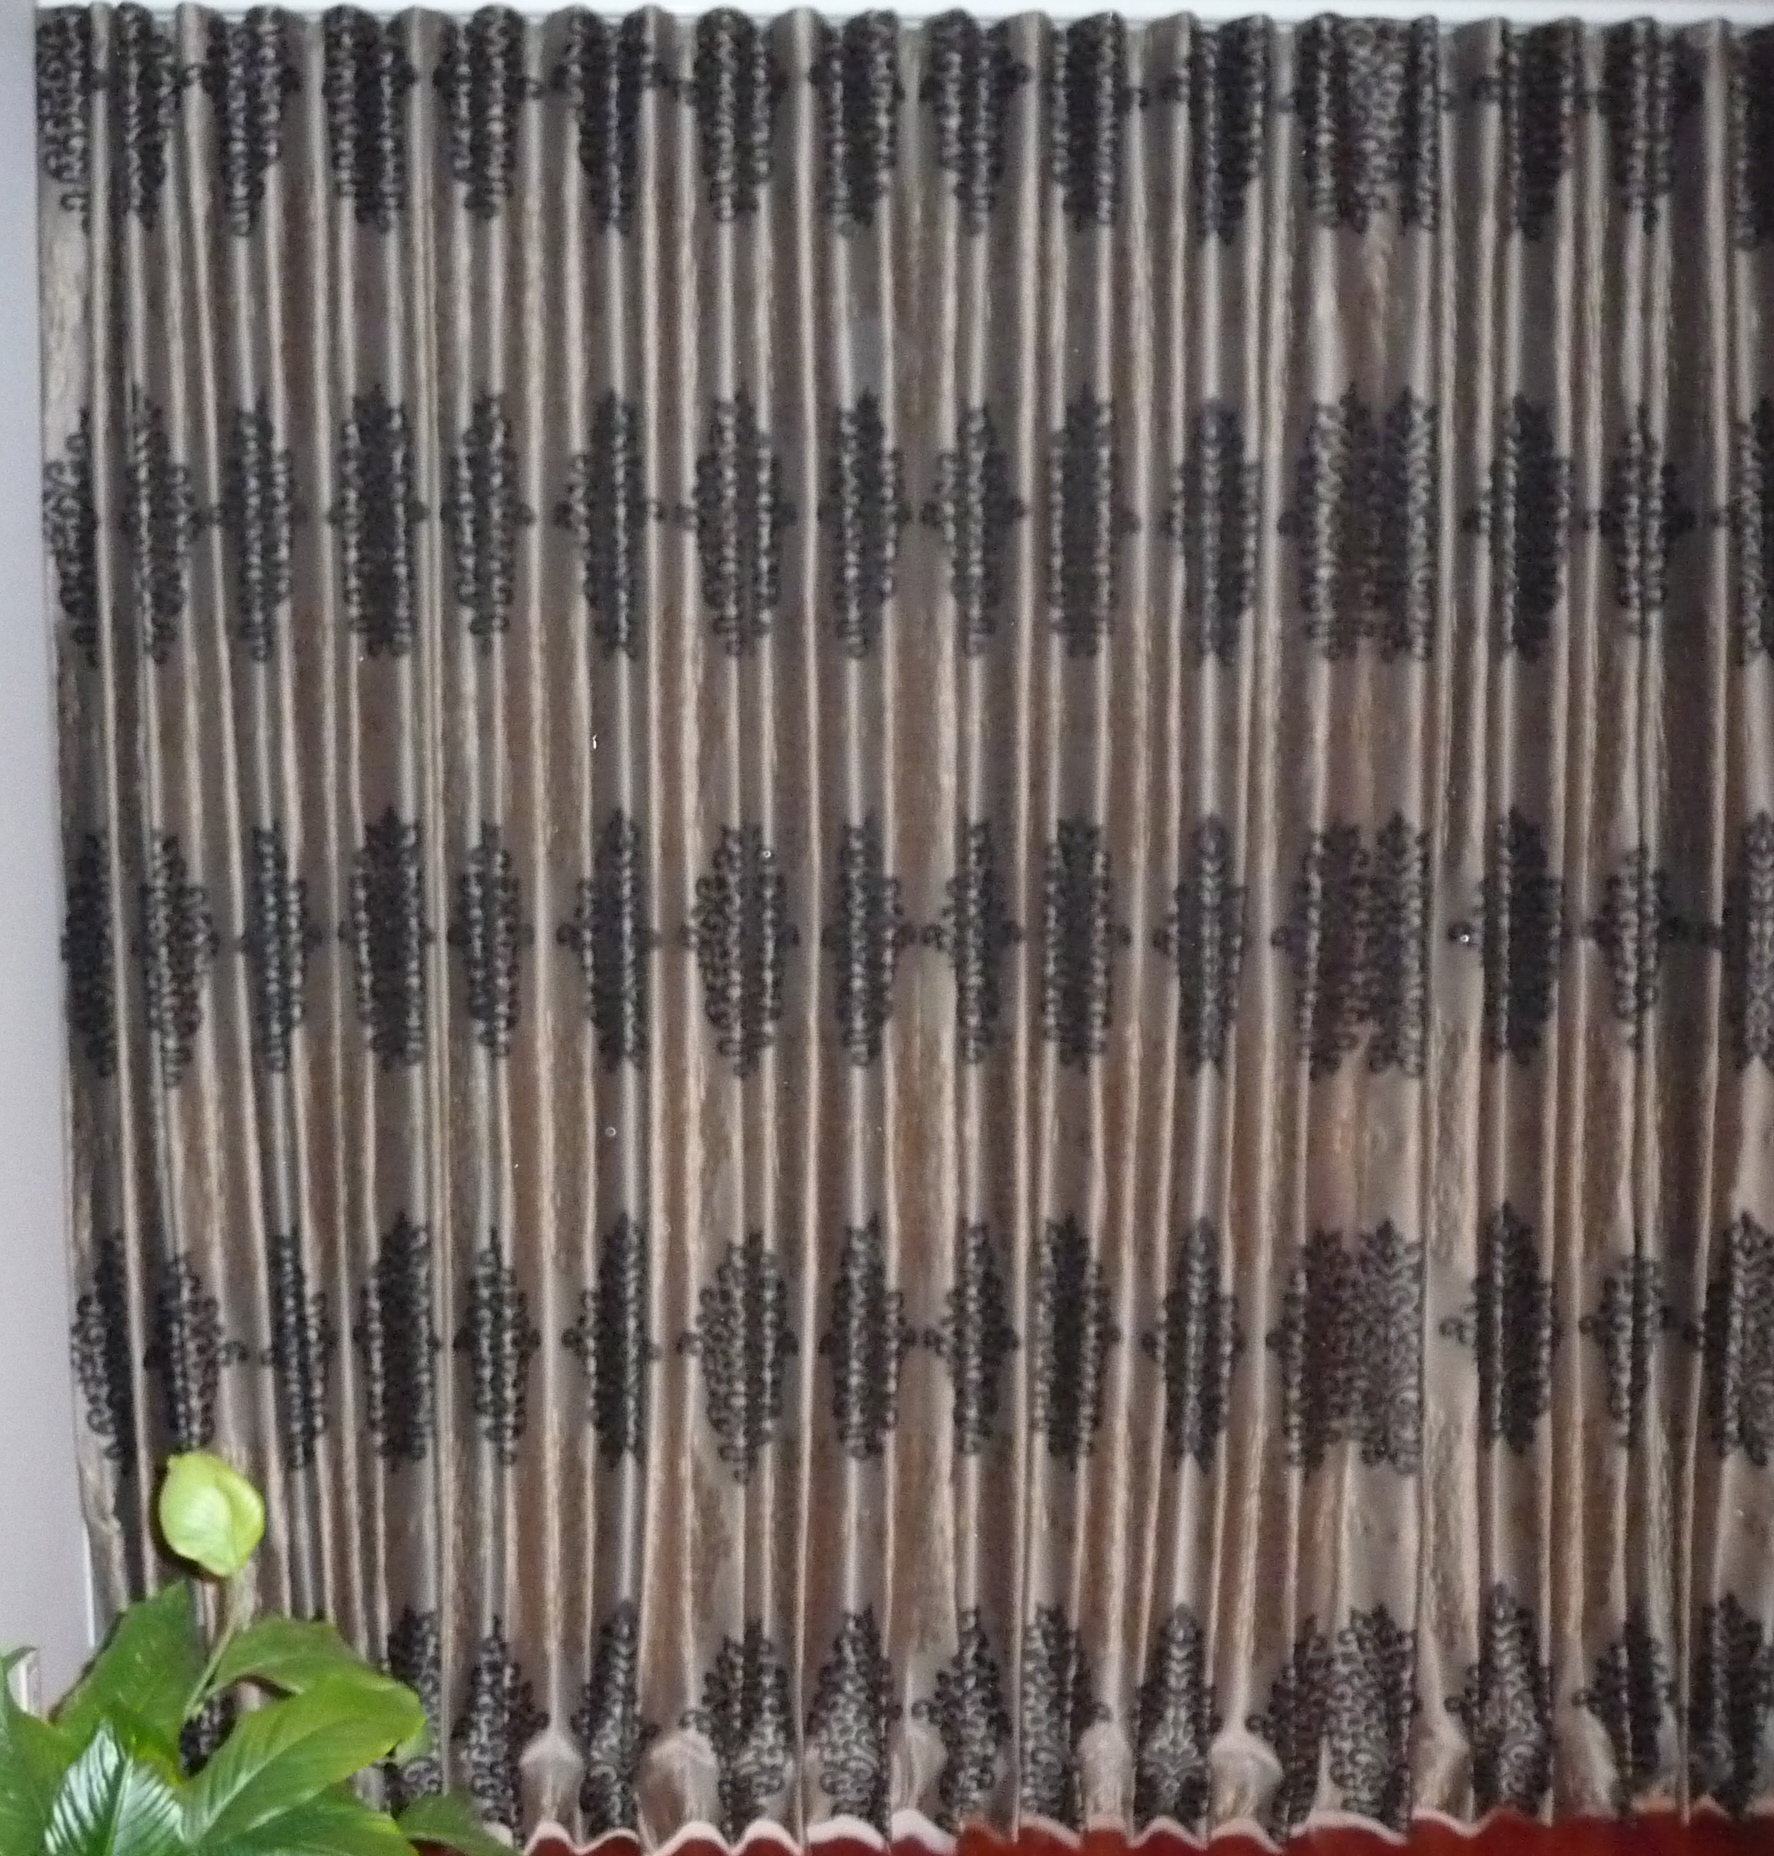 Ripple foled drapes